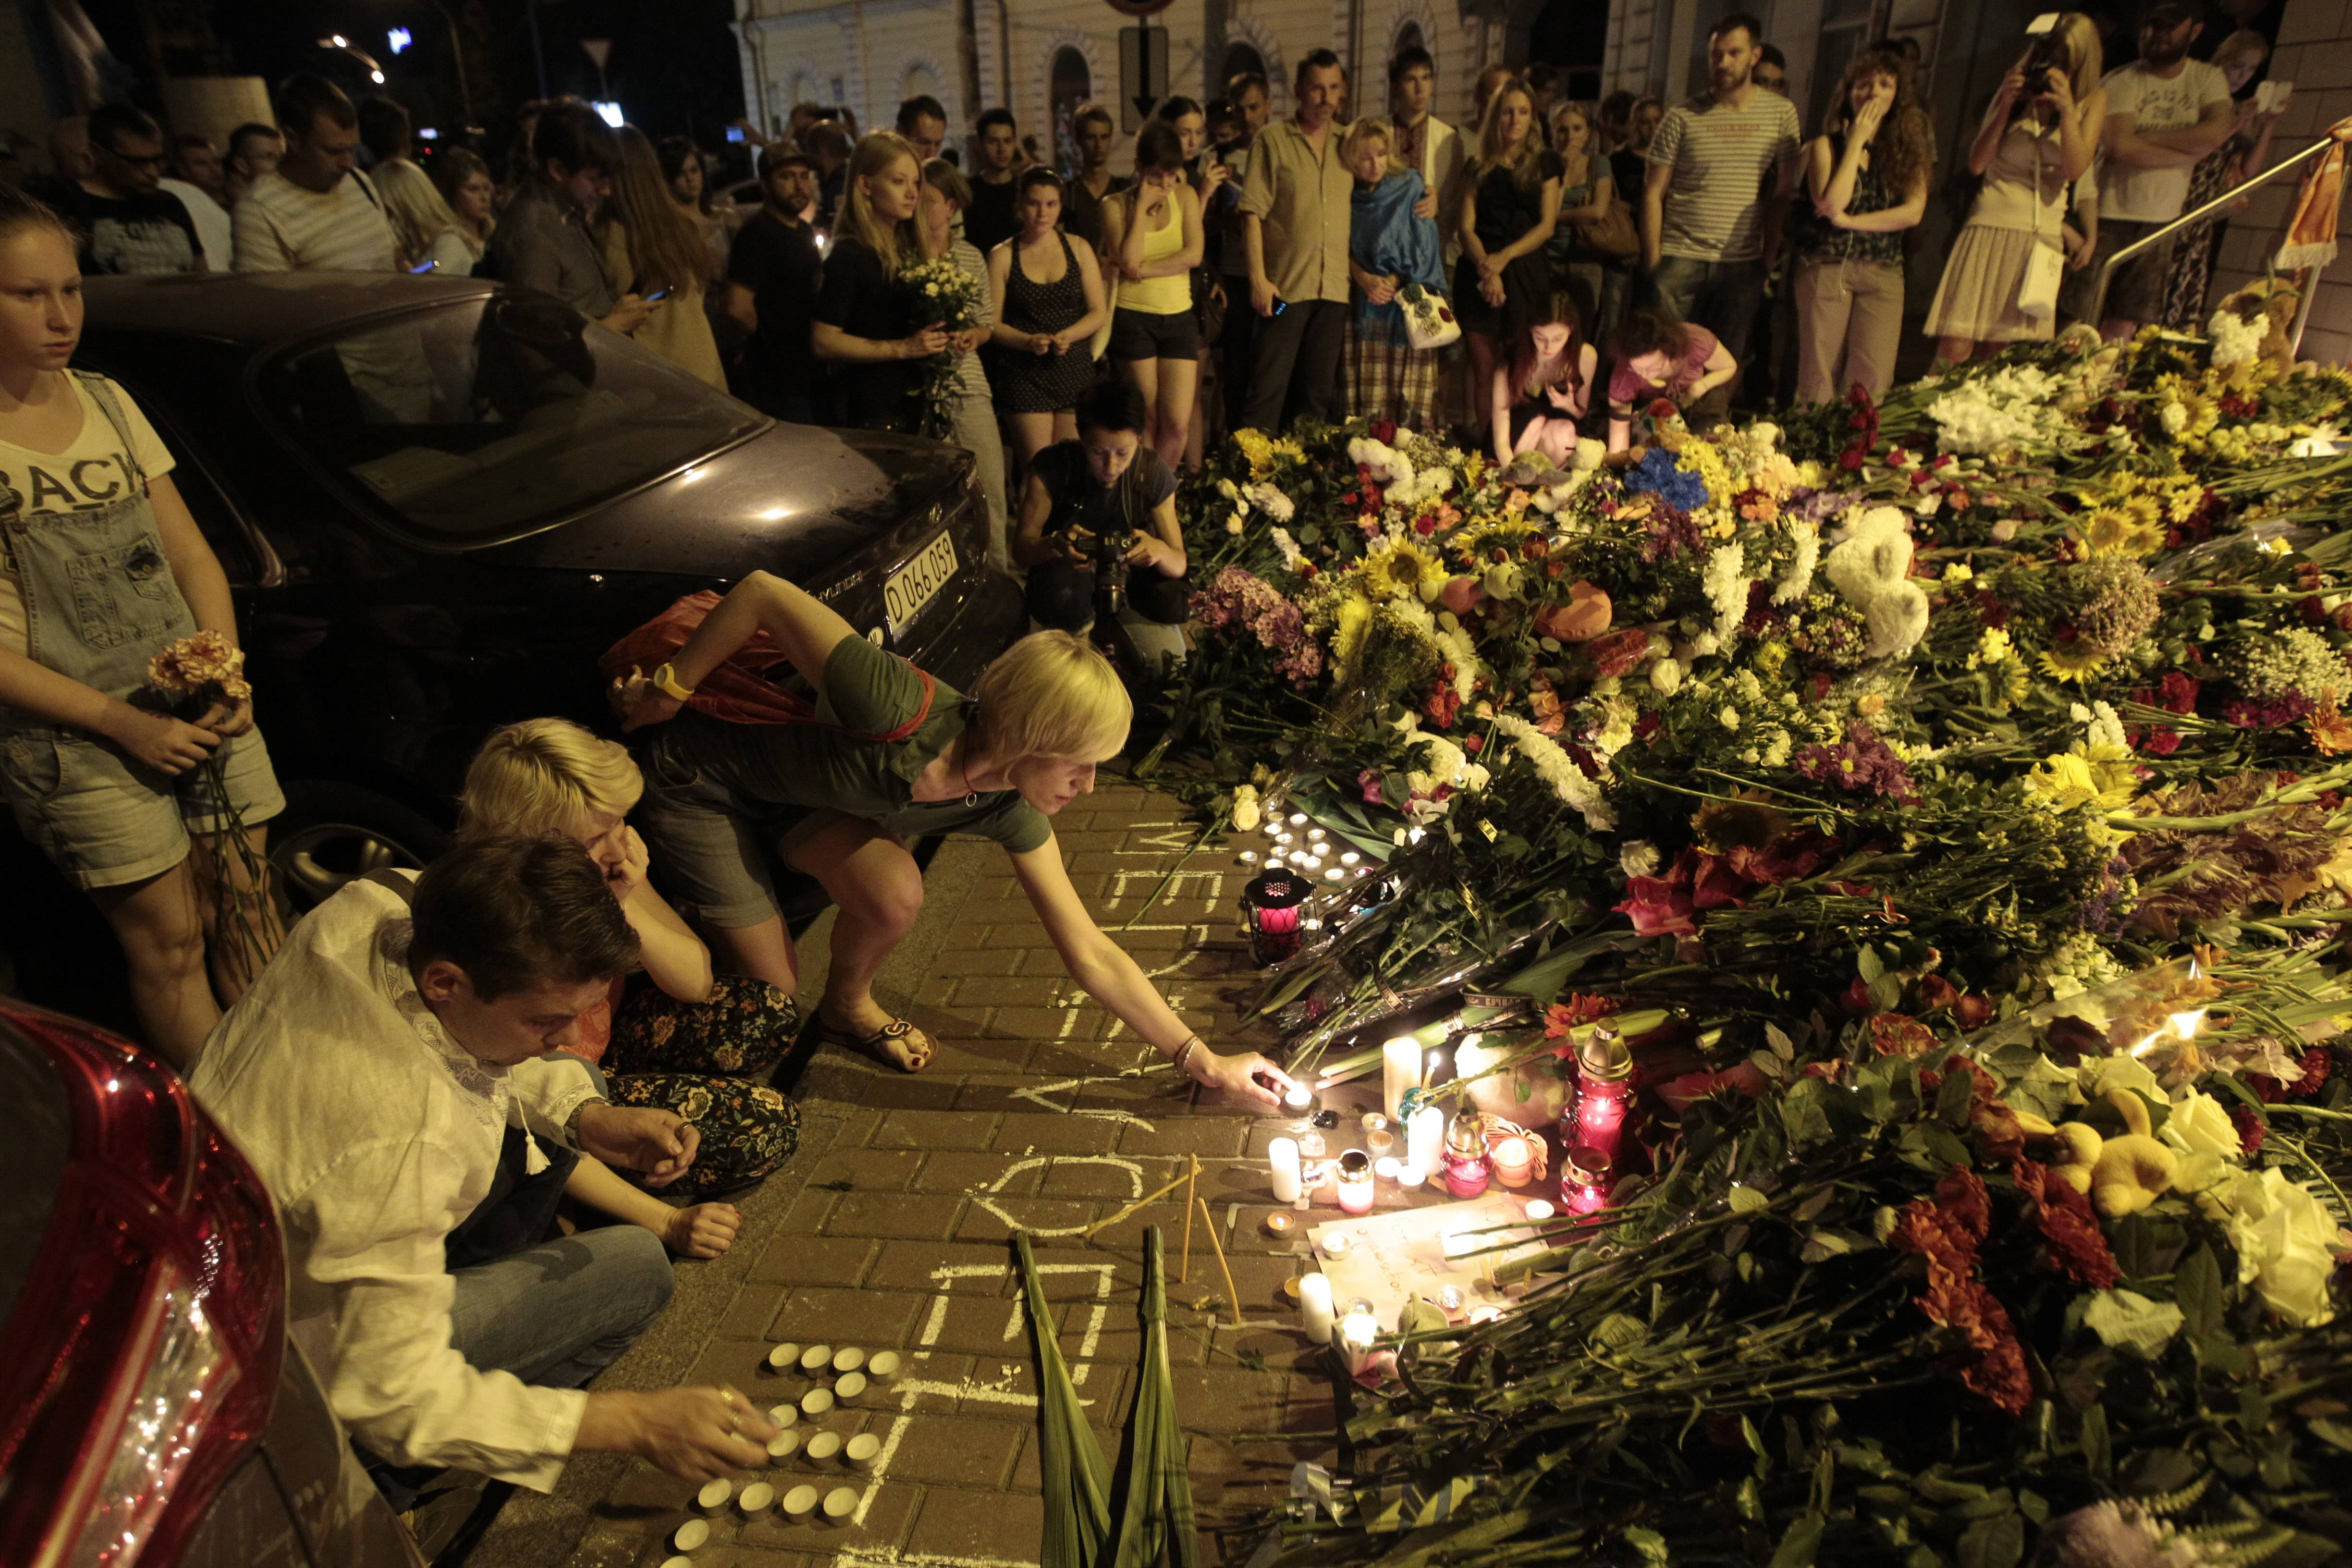 People hold candles and place flower tributes Thursday outside the Dutch embassy to commemorate victims of Malaysia Airlines plane crash in Kiev, Ukraine. A Malaysian Airlines passenger jet was shot down in eastern Ukraine on Thursday, and both the Ukrainian government and pro-Russian rebels blamed one another for the attack.